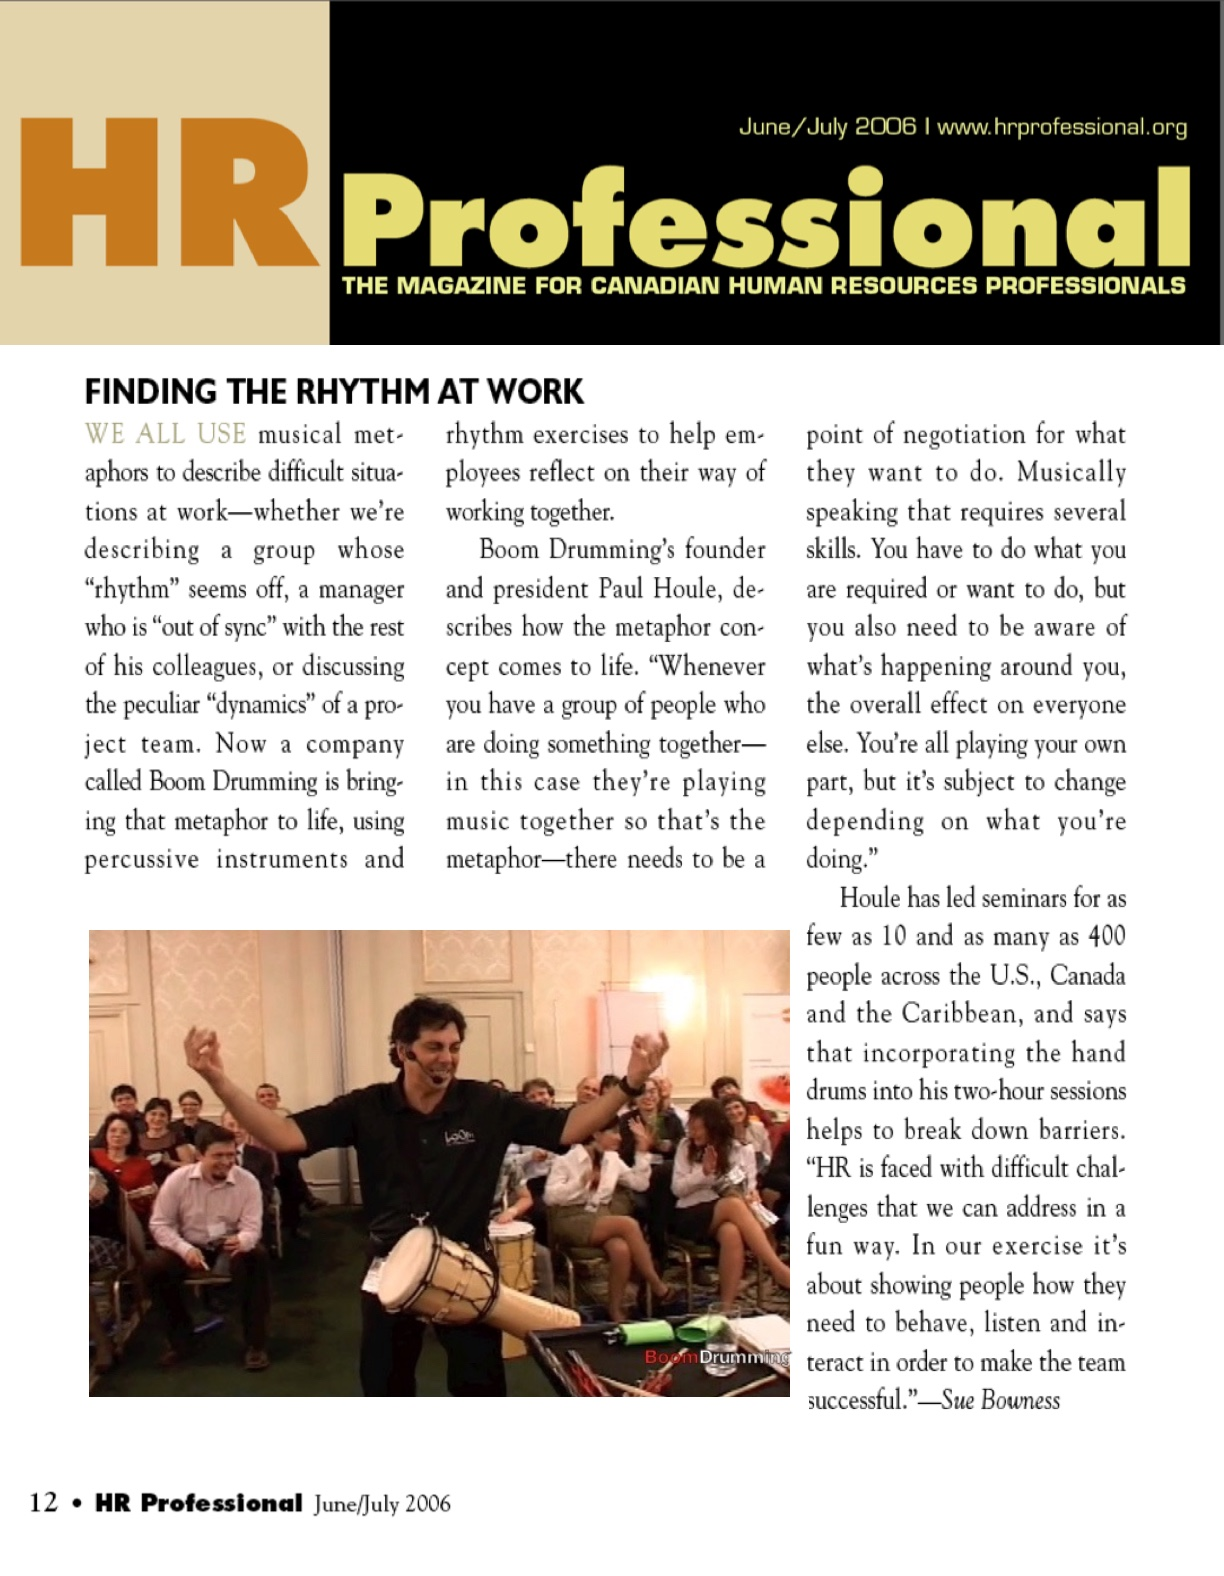 HR Professional Article.jpg